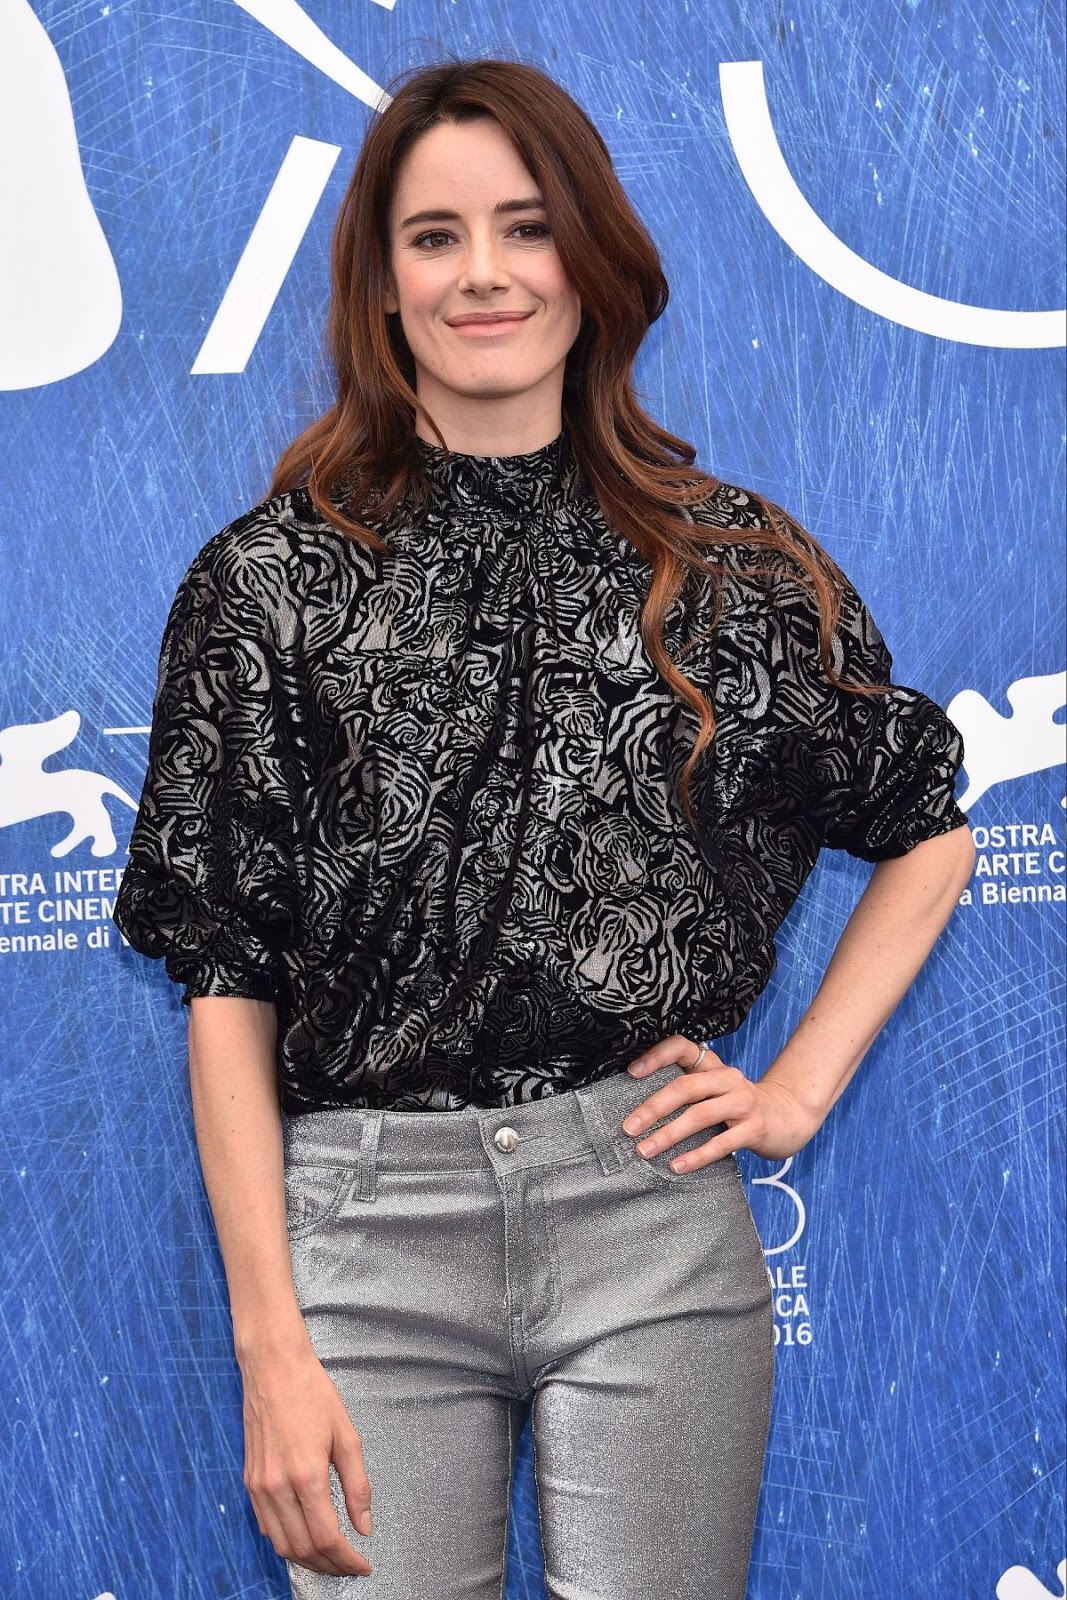 HQ Photos of Pilar Lopez De Ayala at 2016 73rd Venice Film Festival Jury Photocall in Venice